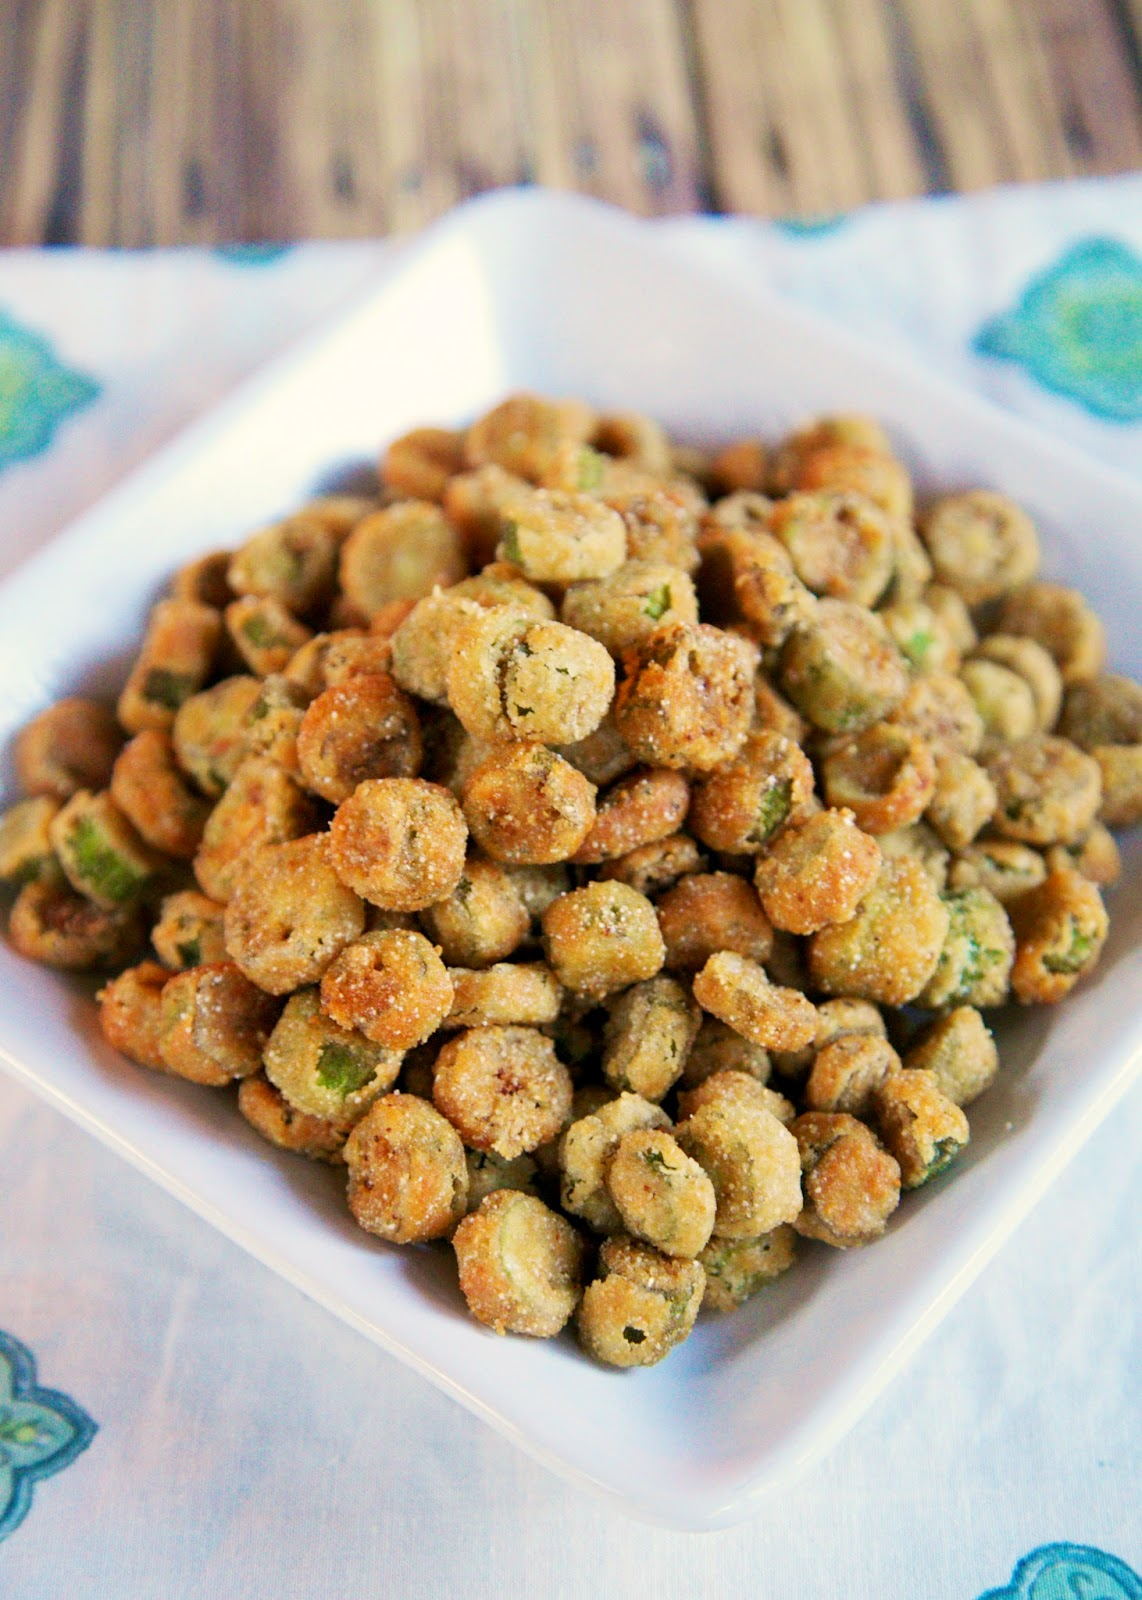 2-Ingredient Fried Okra - my favorite vegetable! SO good. I can eat the whole batch of this yummy, crunchy okra. My absolute fav!